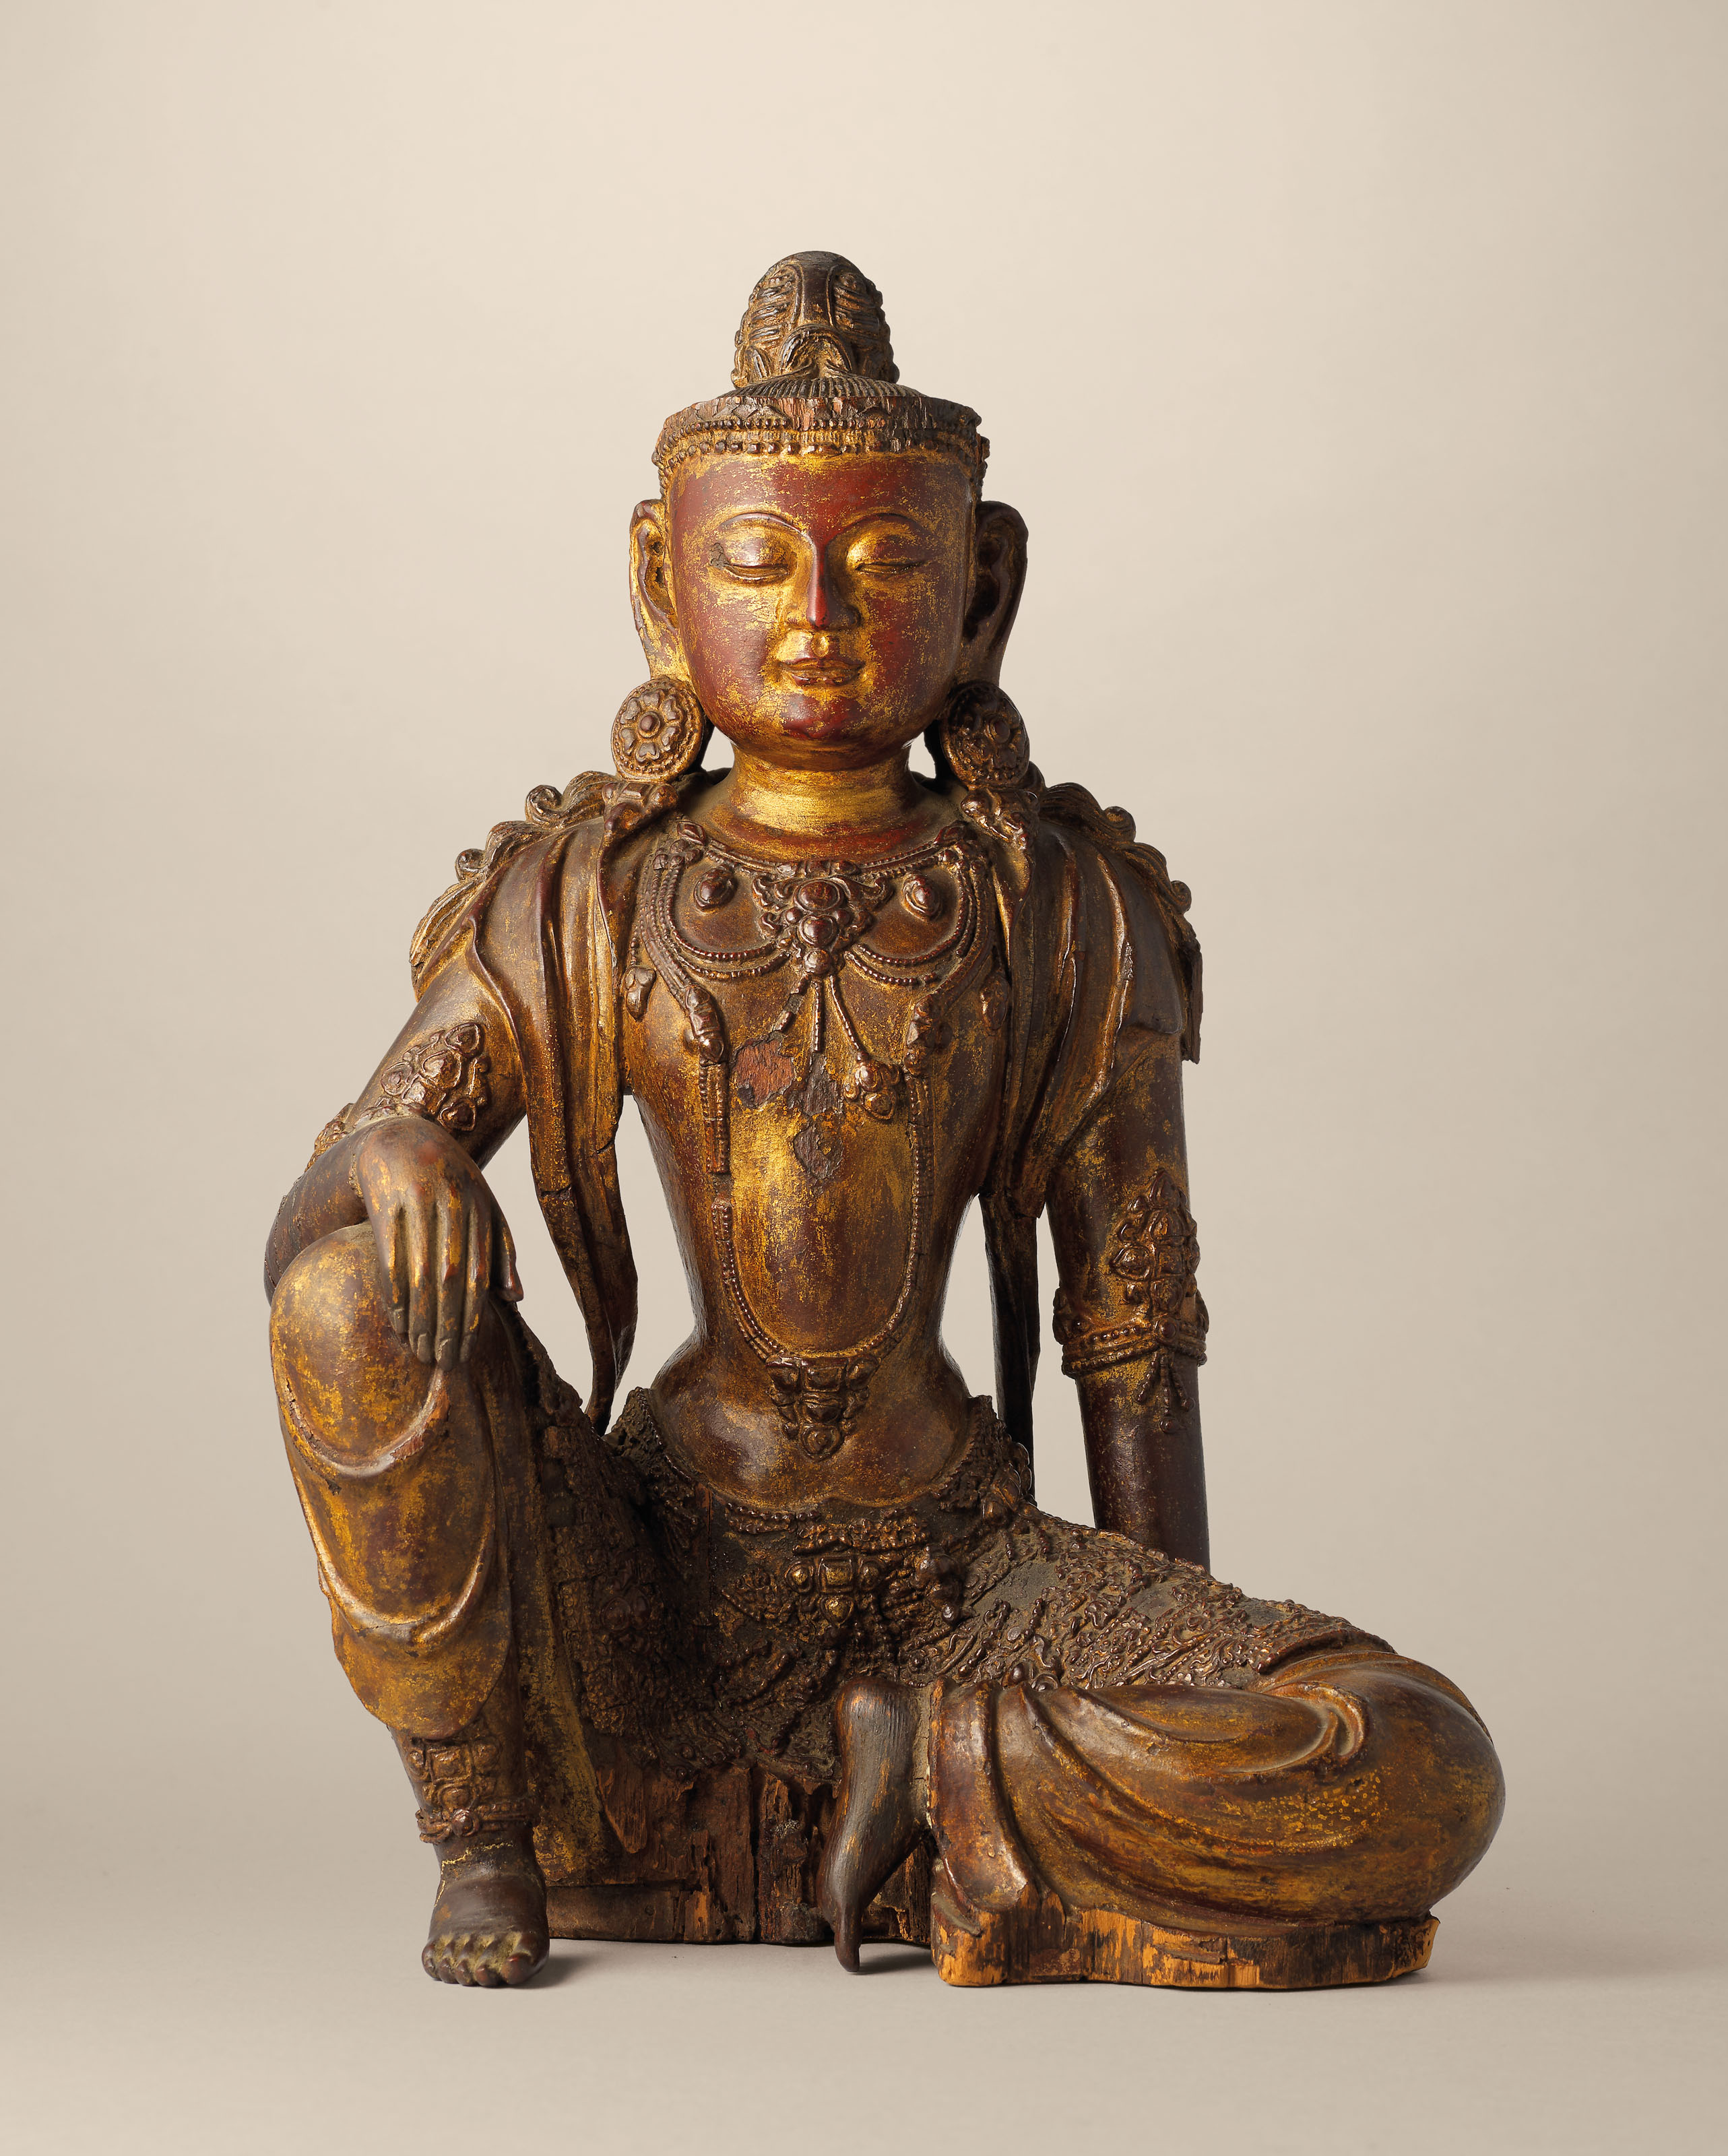 A RARE GILT-LACQUERED WOOD SEATED FIGURE OF A BODHISATTVA